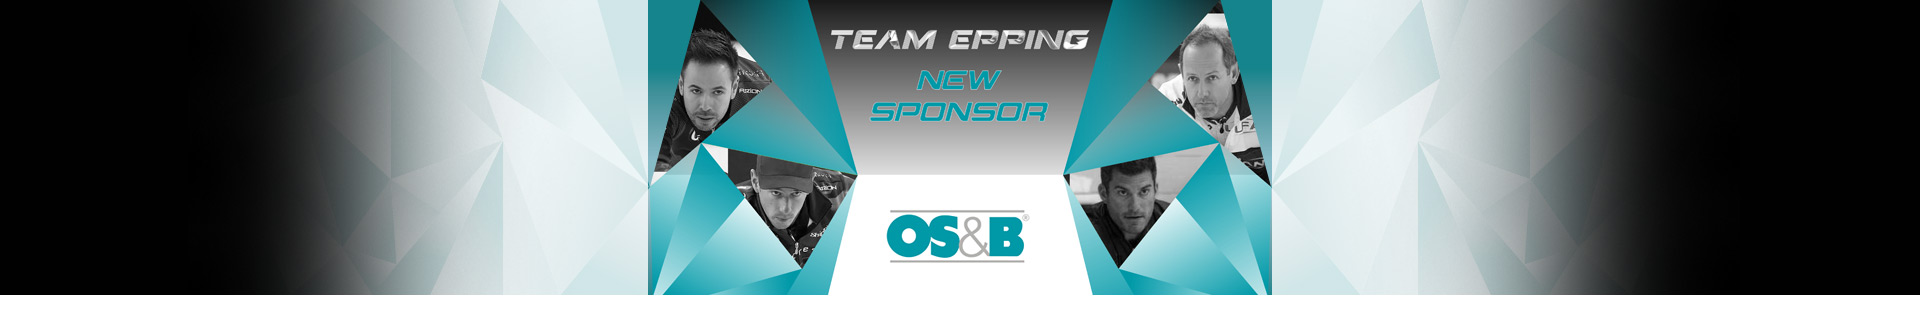 OS&B Sponsorship of Team Epping